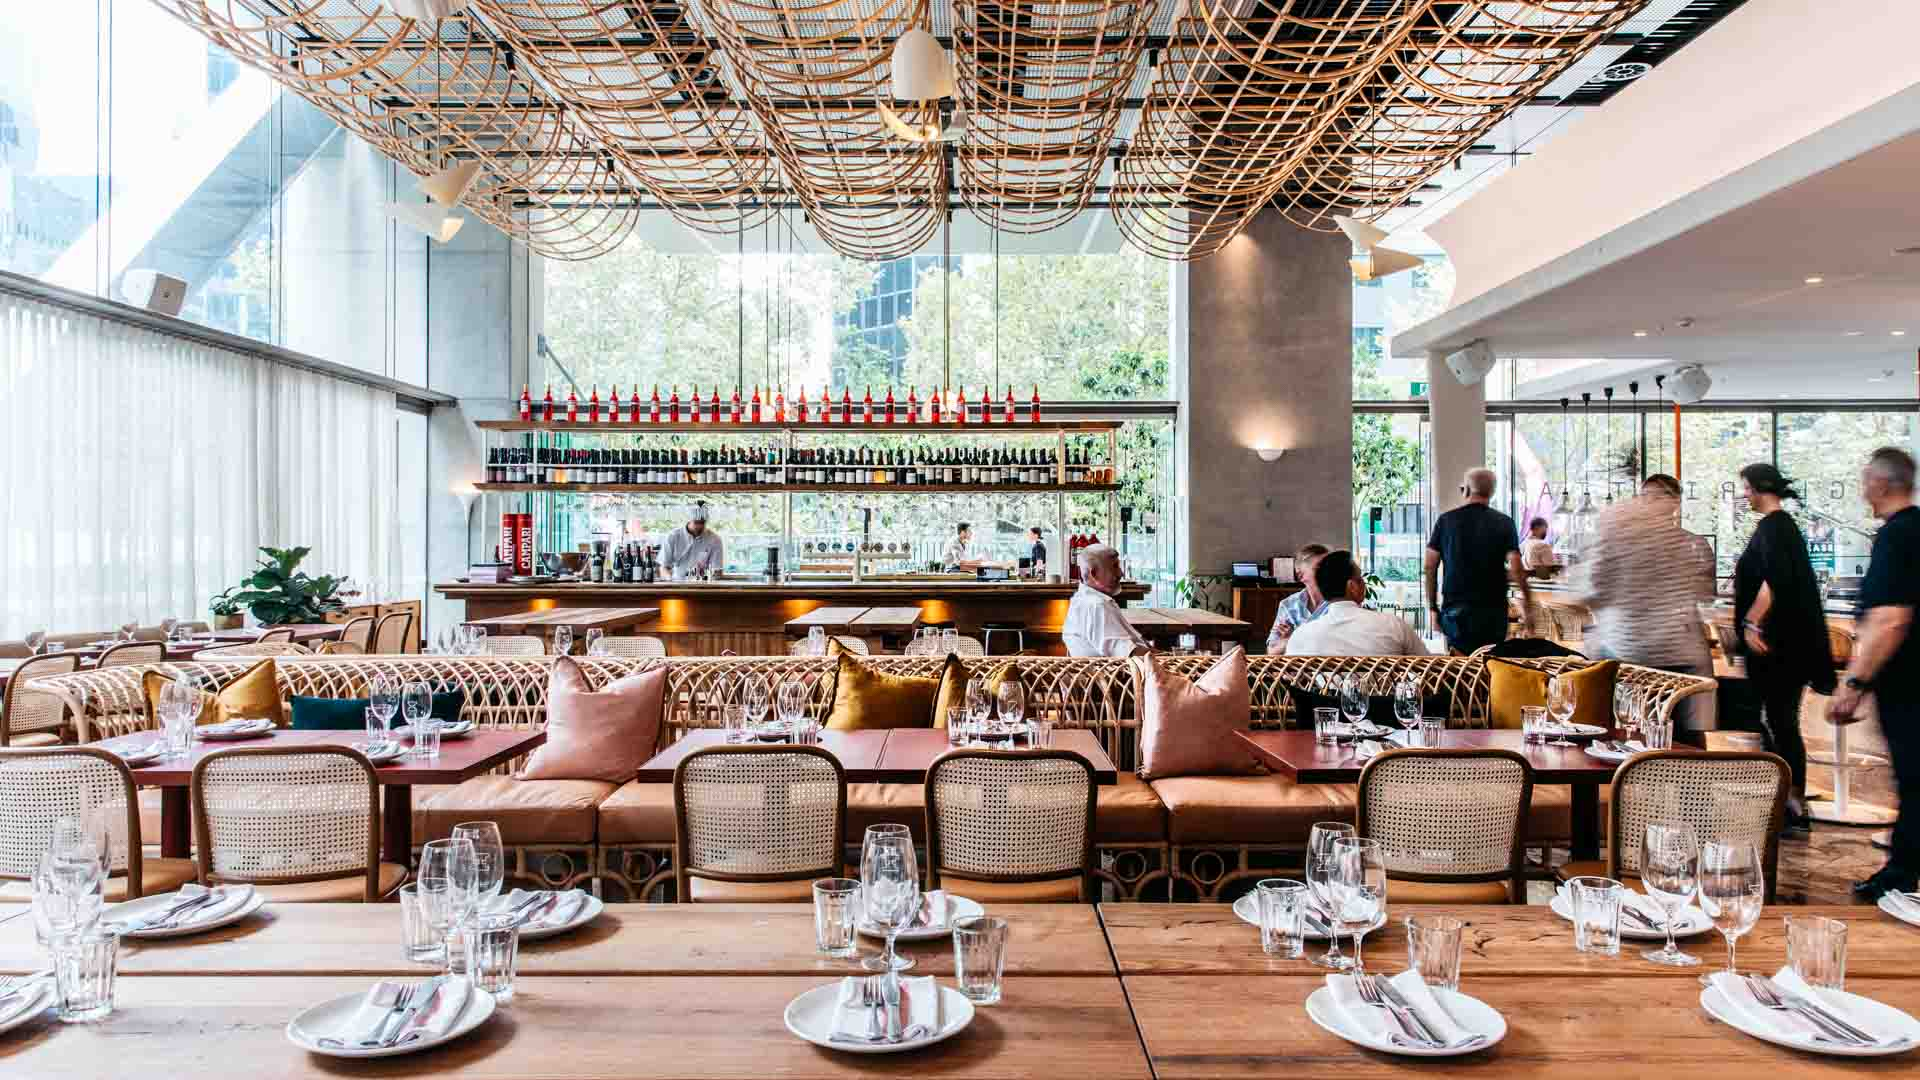 Glorietta Is North Sydney's New Italian Eatery with a Sunny Courtyard and Lots of Burrata